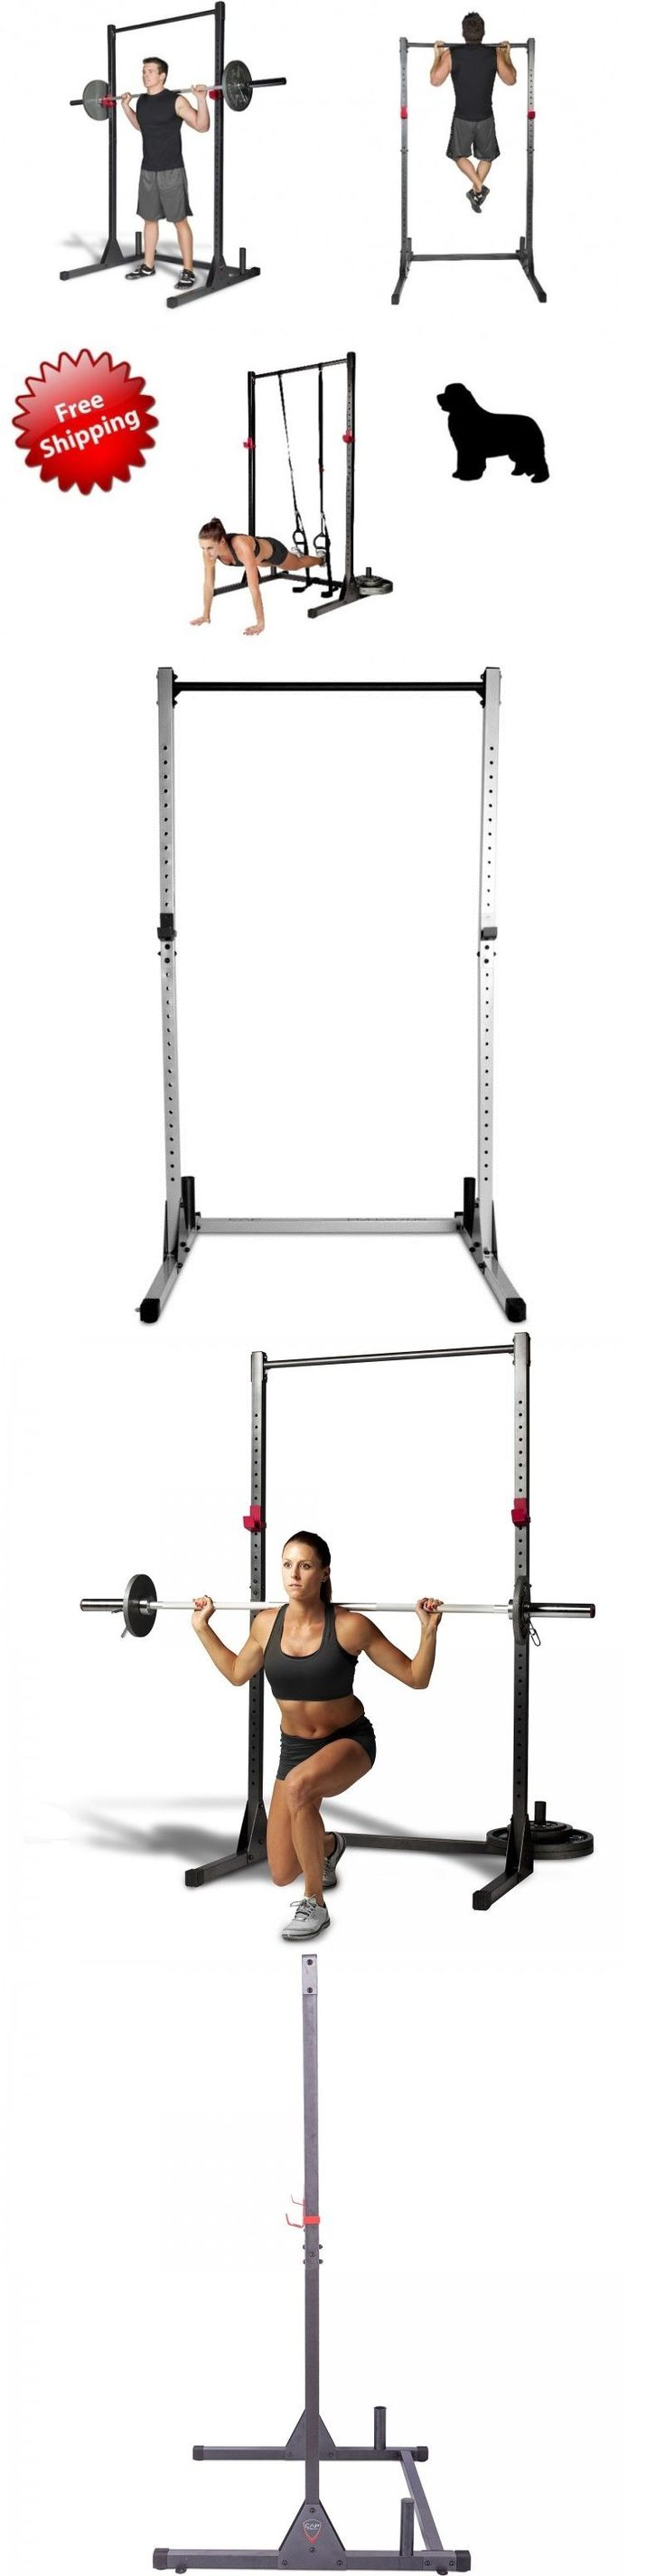 Other Strength Training 28067: New Home Gym Power Rack Cage Exercise Stand Pull Up Bar Workout Fitness Training BUY IT NOW ONLY: $120.17